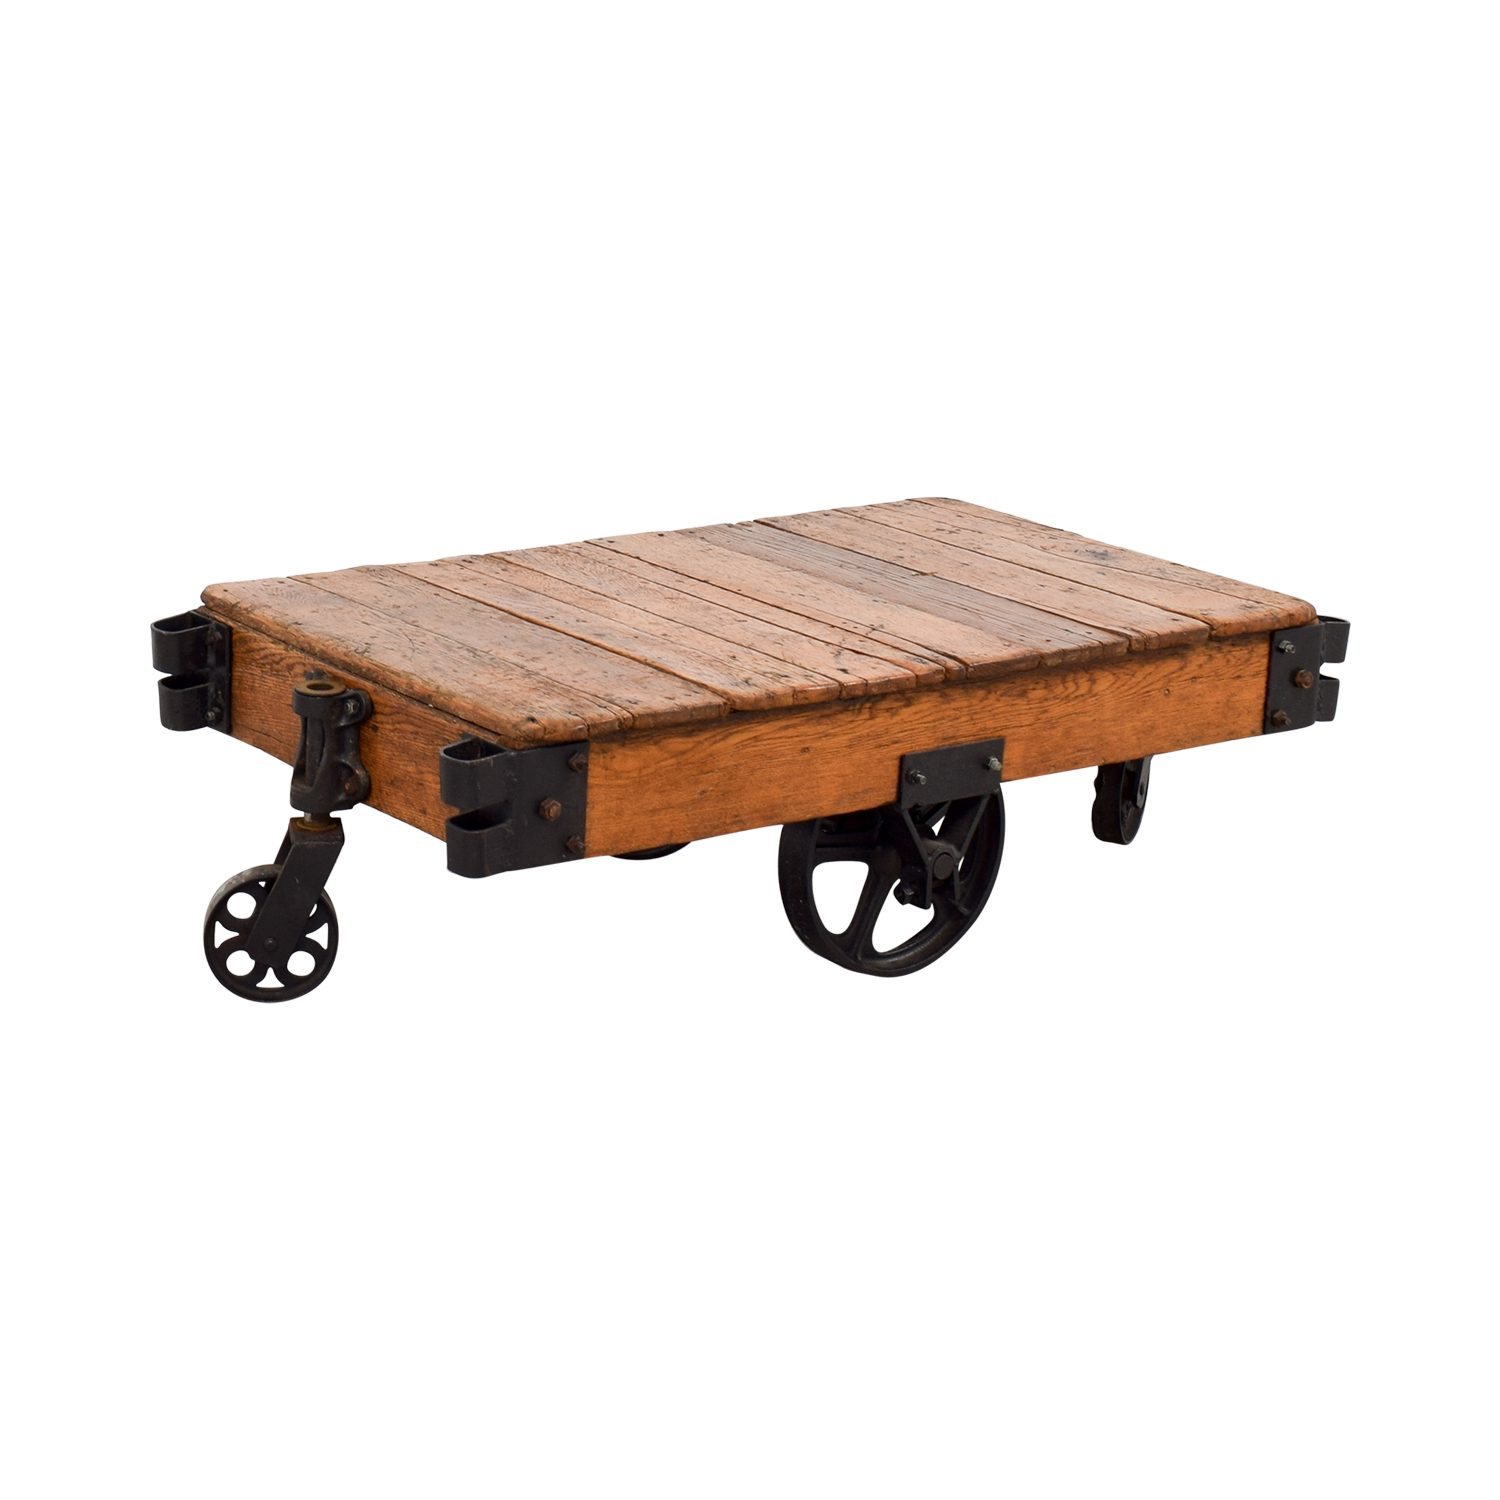 ... Restoration Hardware Rustic Coffee Table With Wheels / Coffee Tables ...